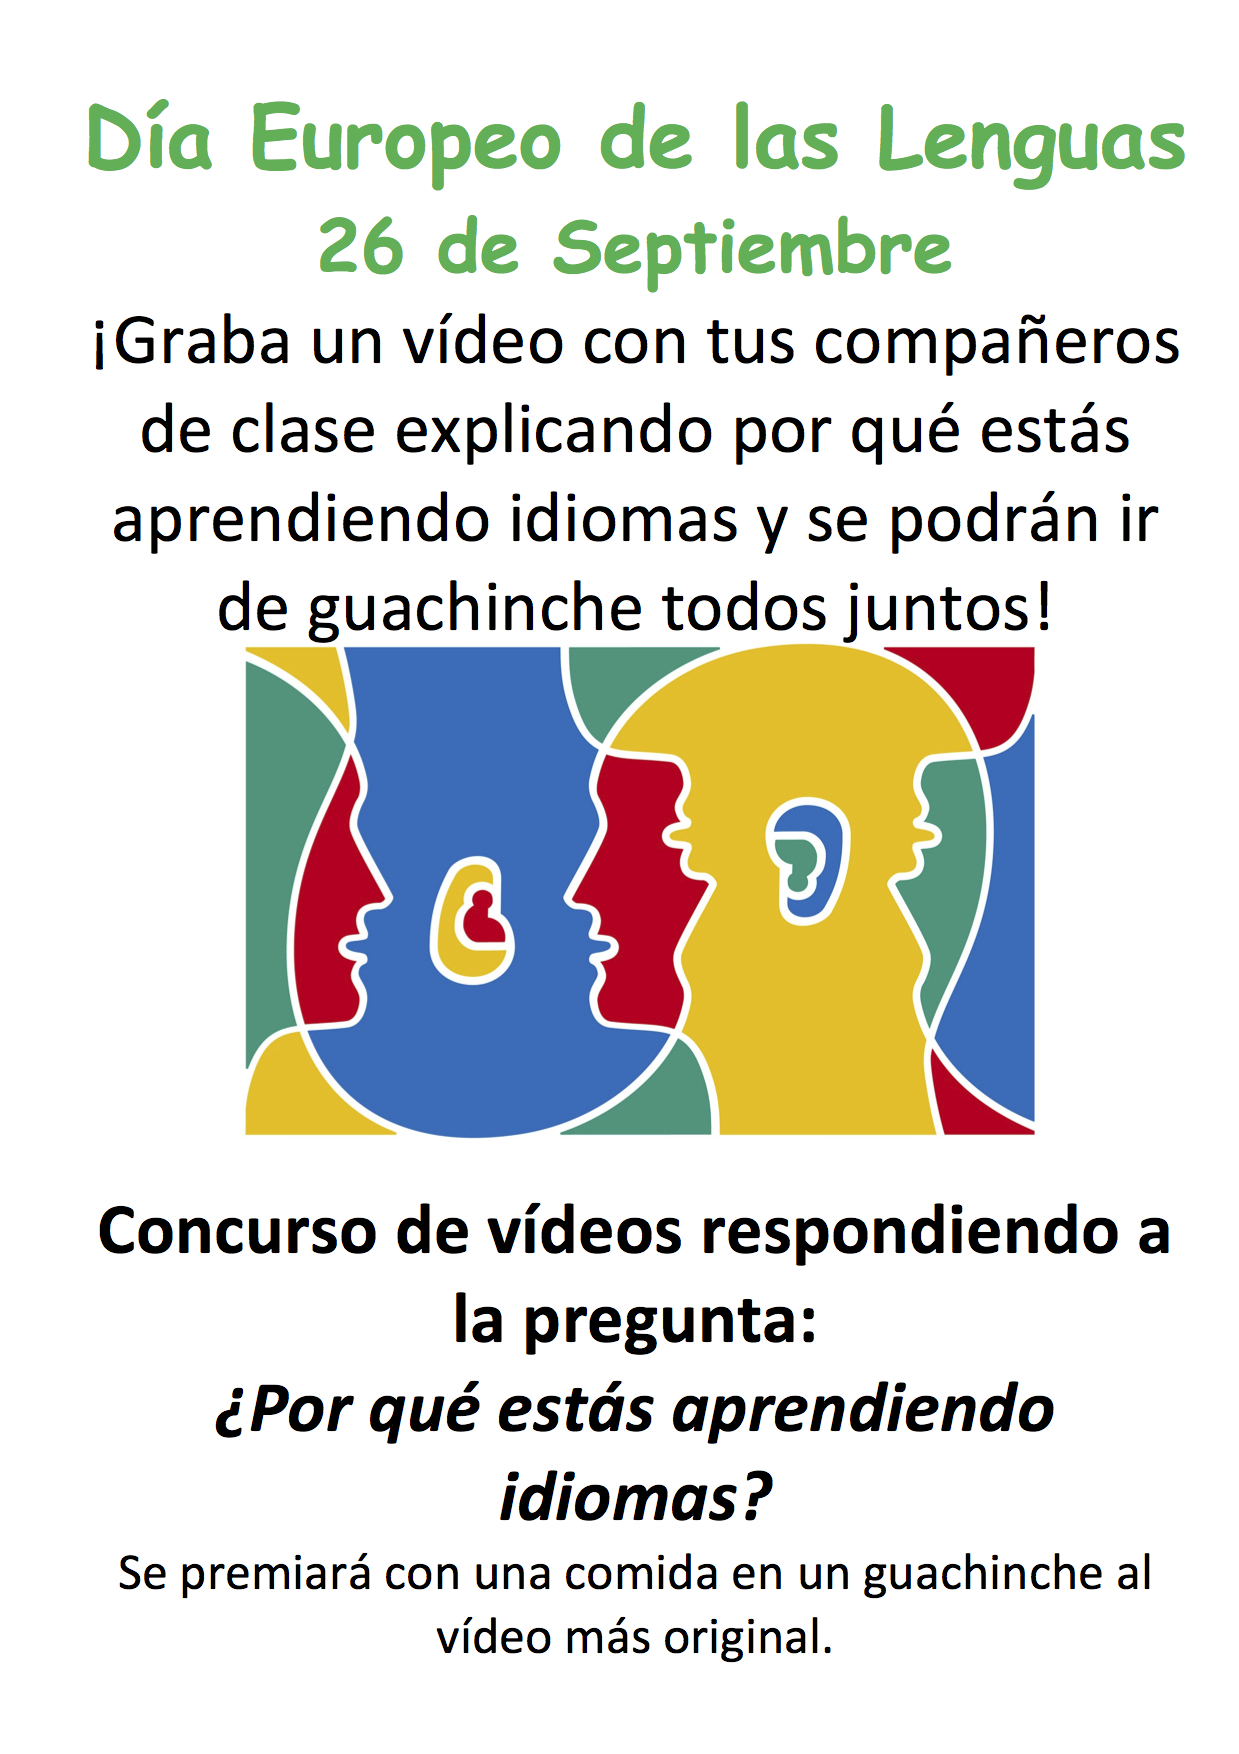 día europeo de las lenguas_concurso vídeo